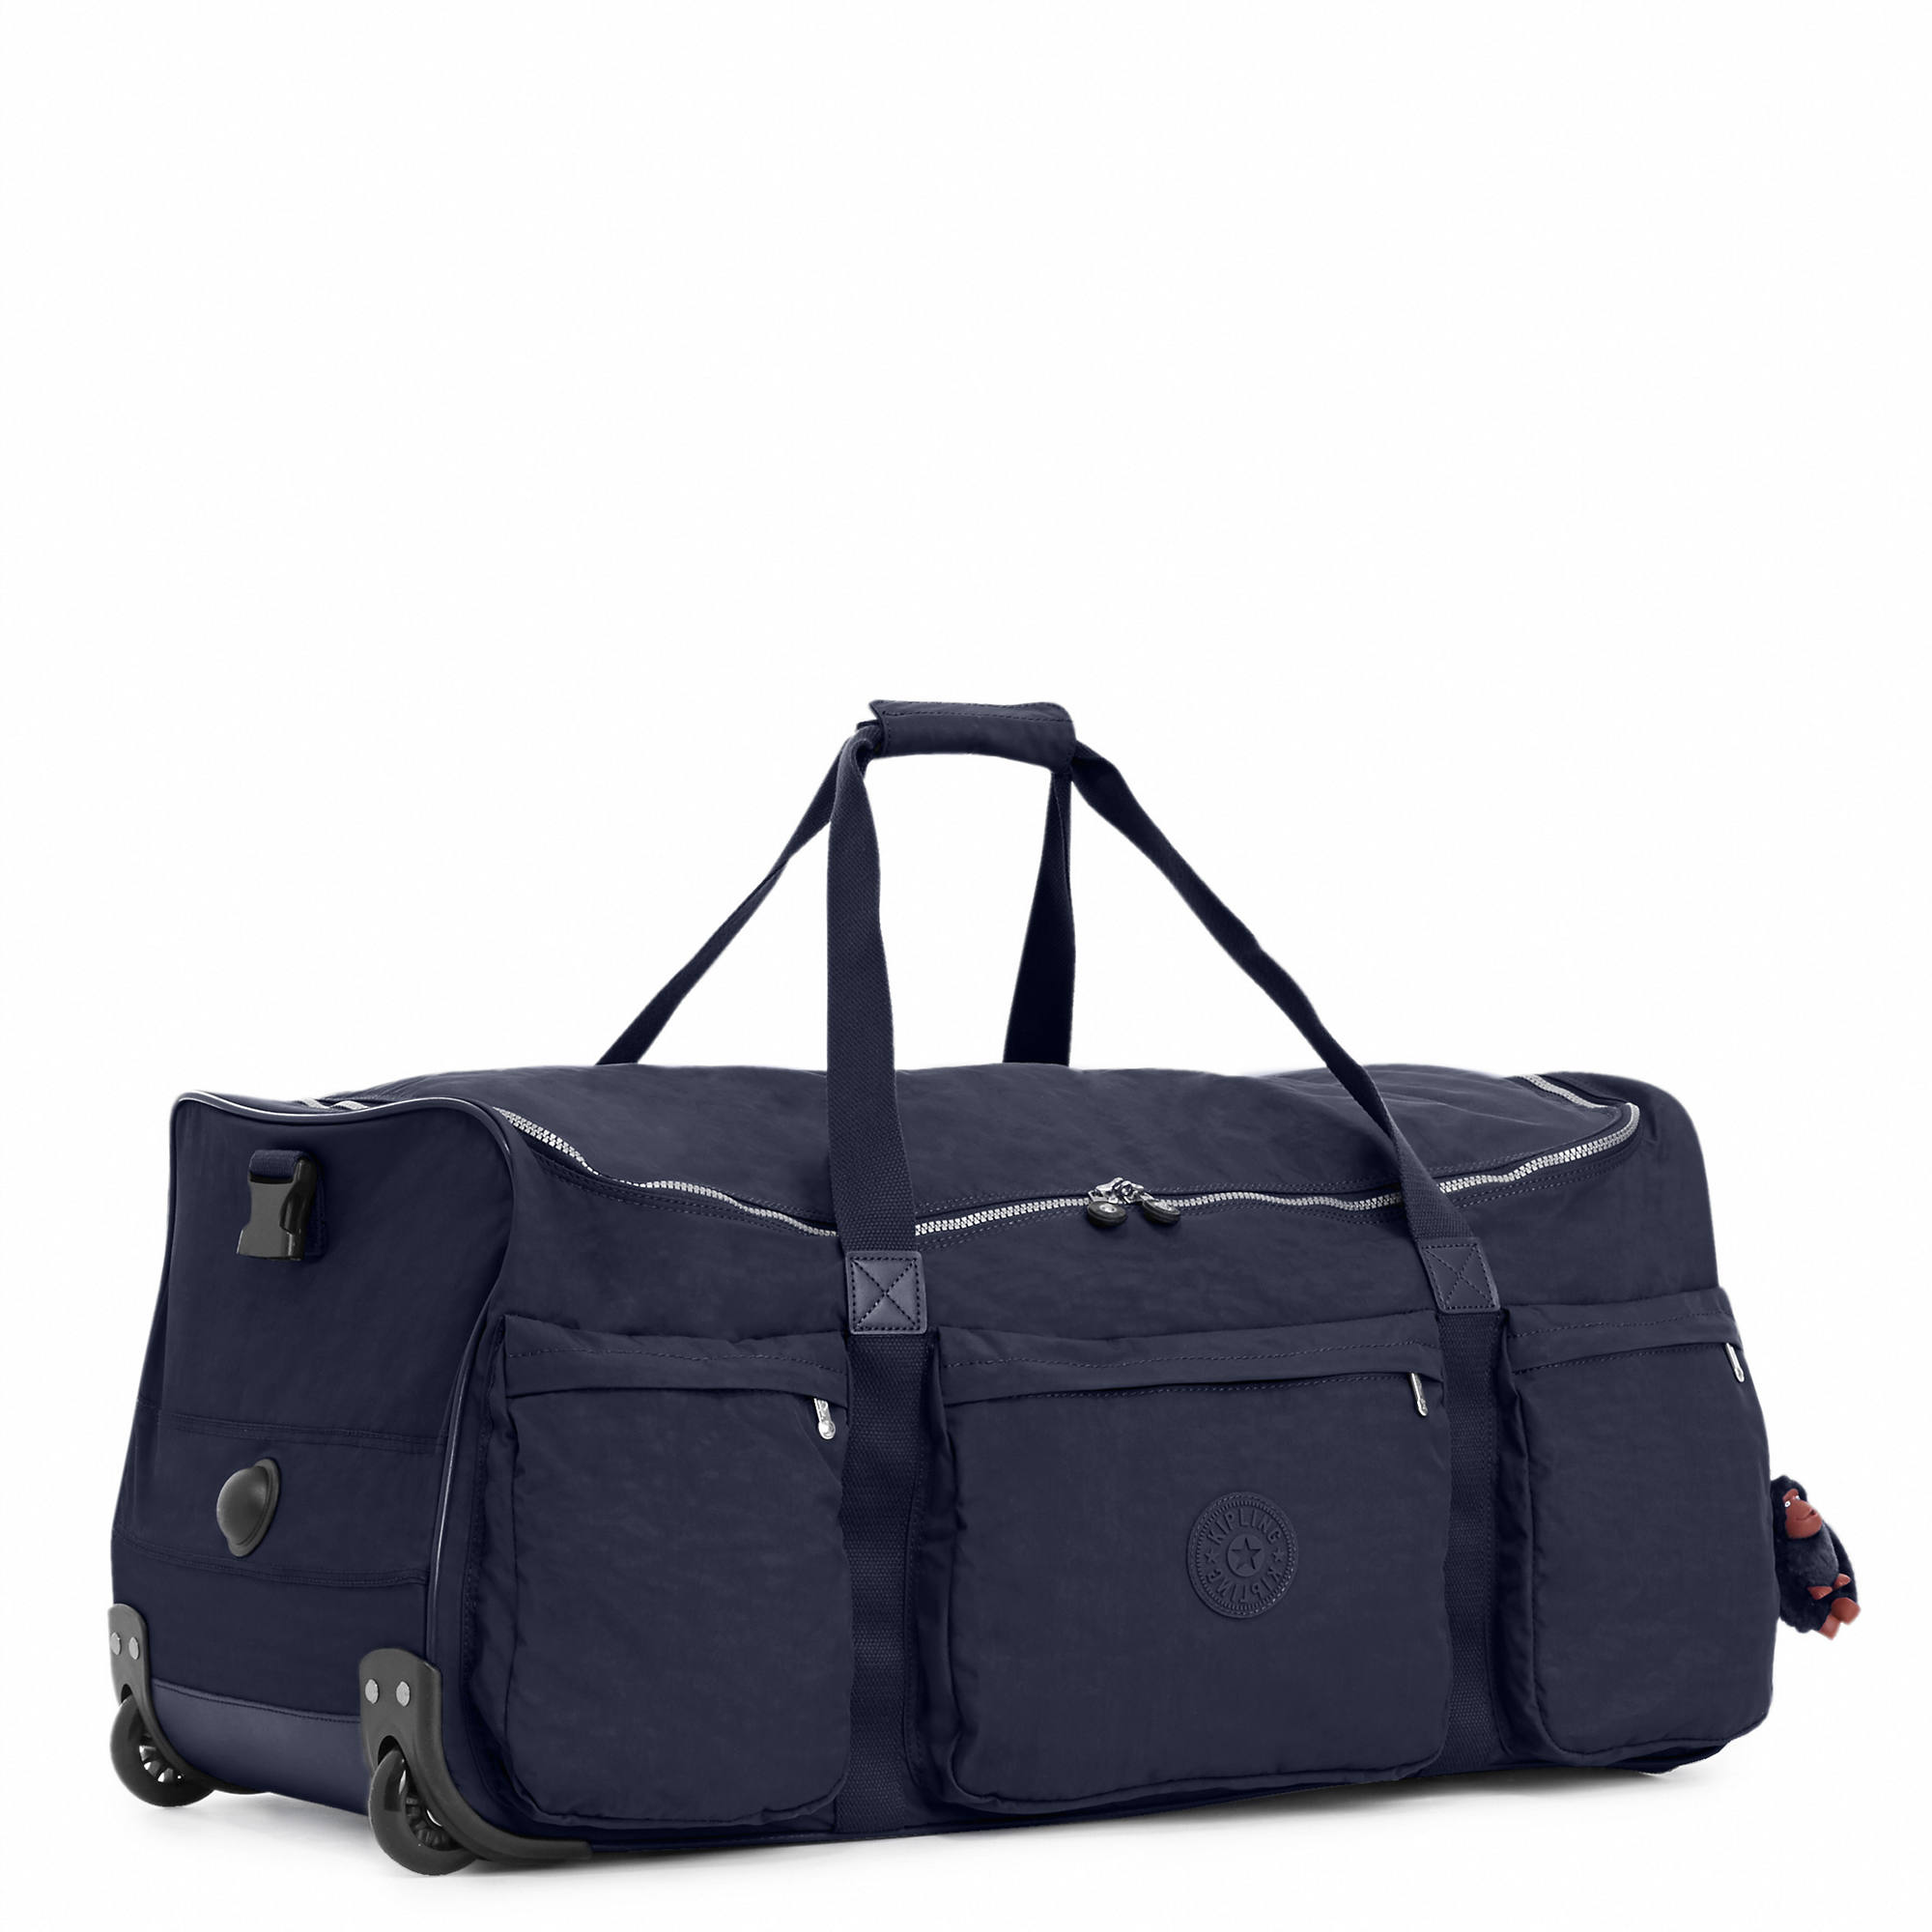 641216eac4 Kipling Discover Large Rolling Luggage Duffel | eBay